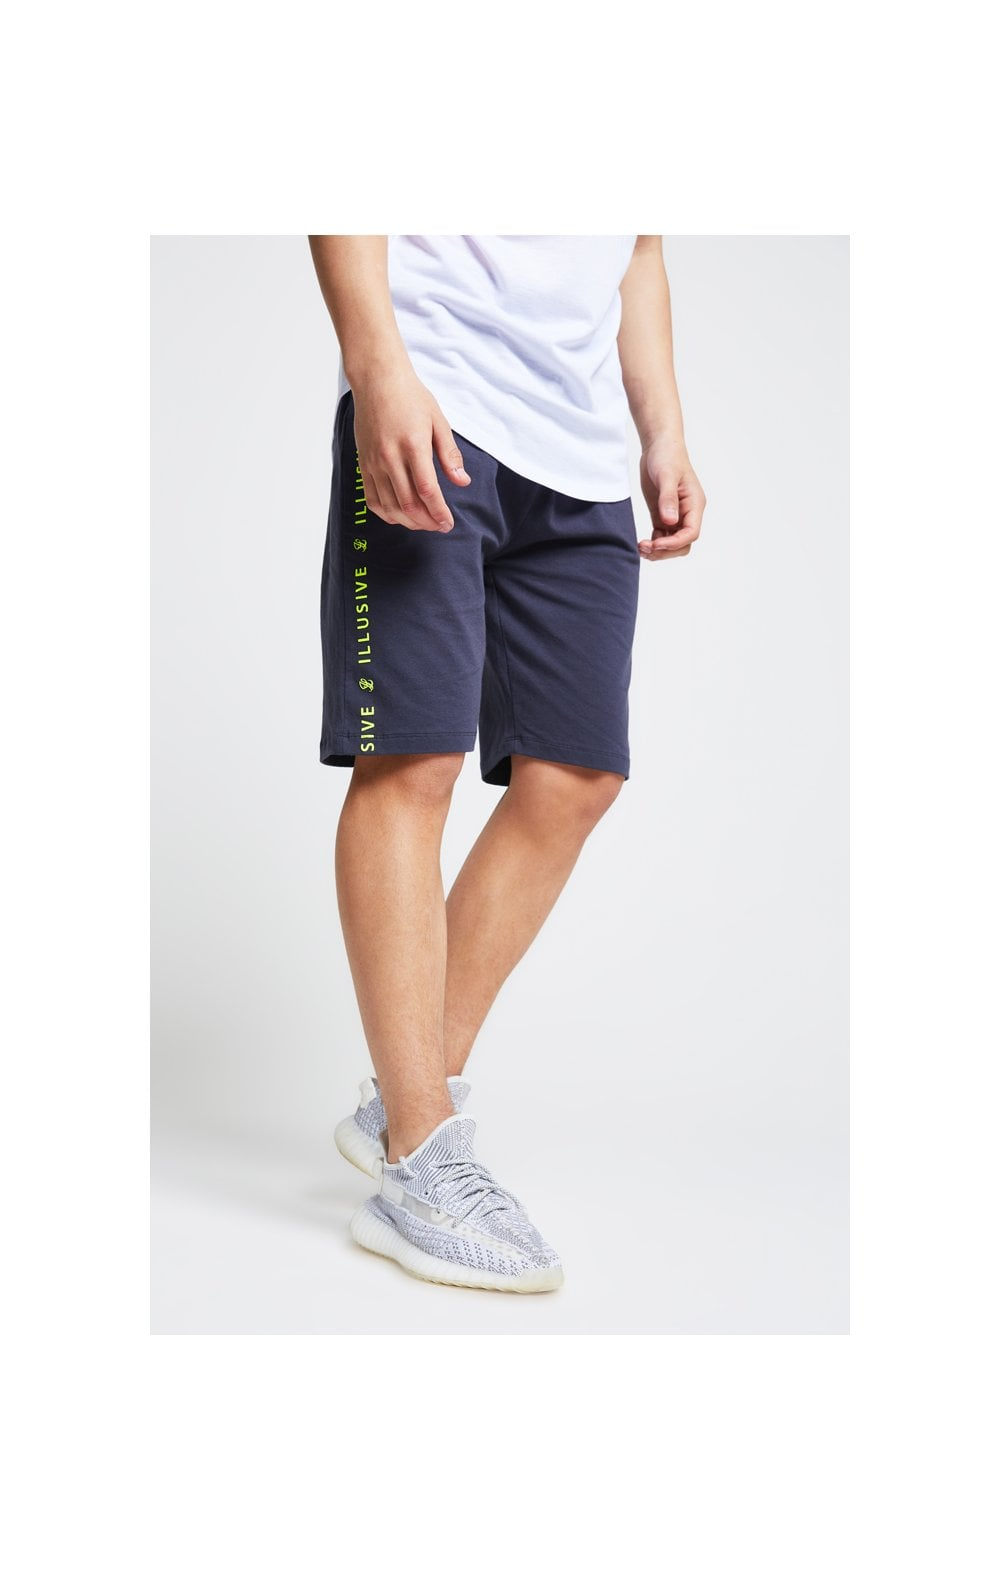 Illusive London Jersey Shorts - Grey Neon Yellow (1)